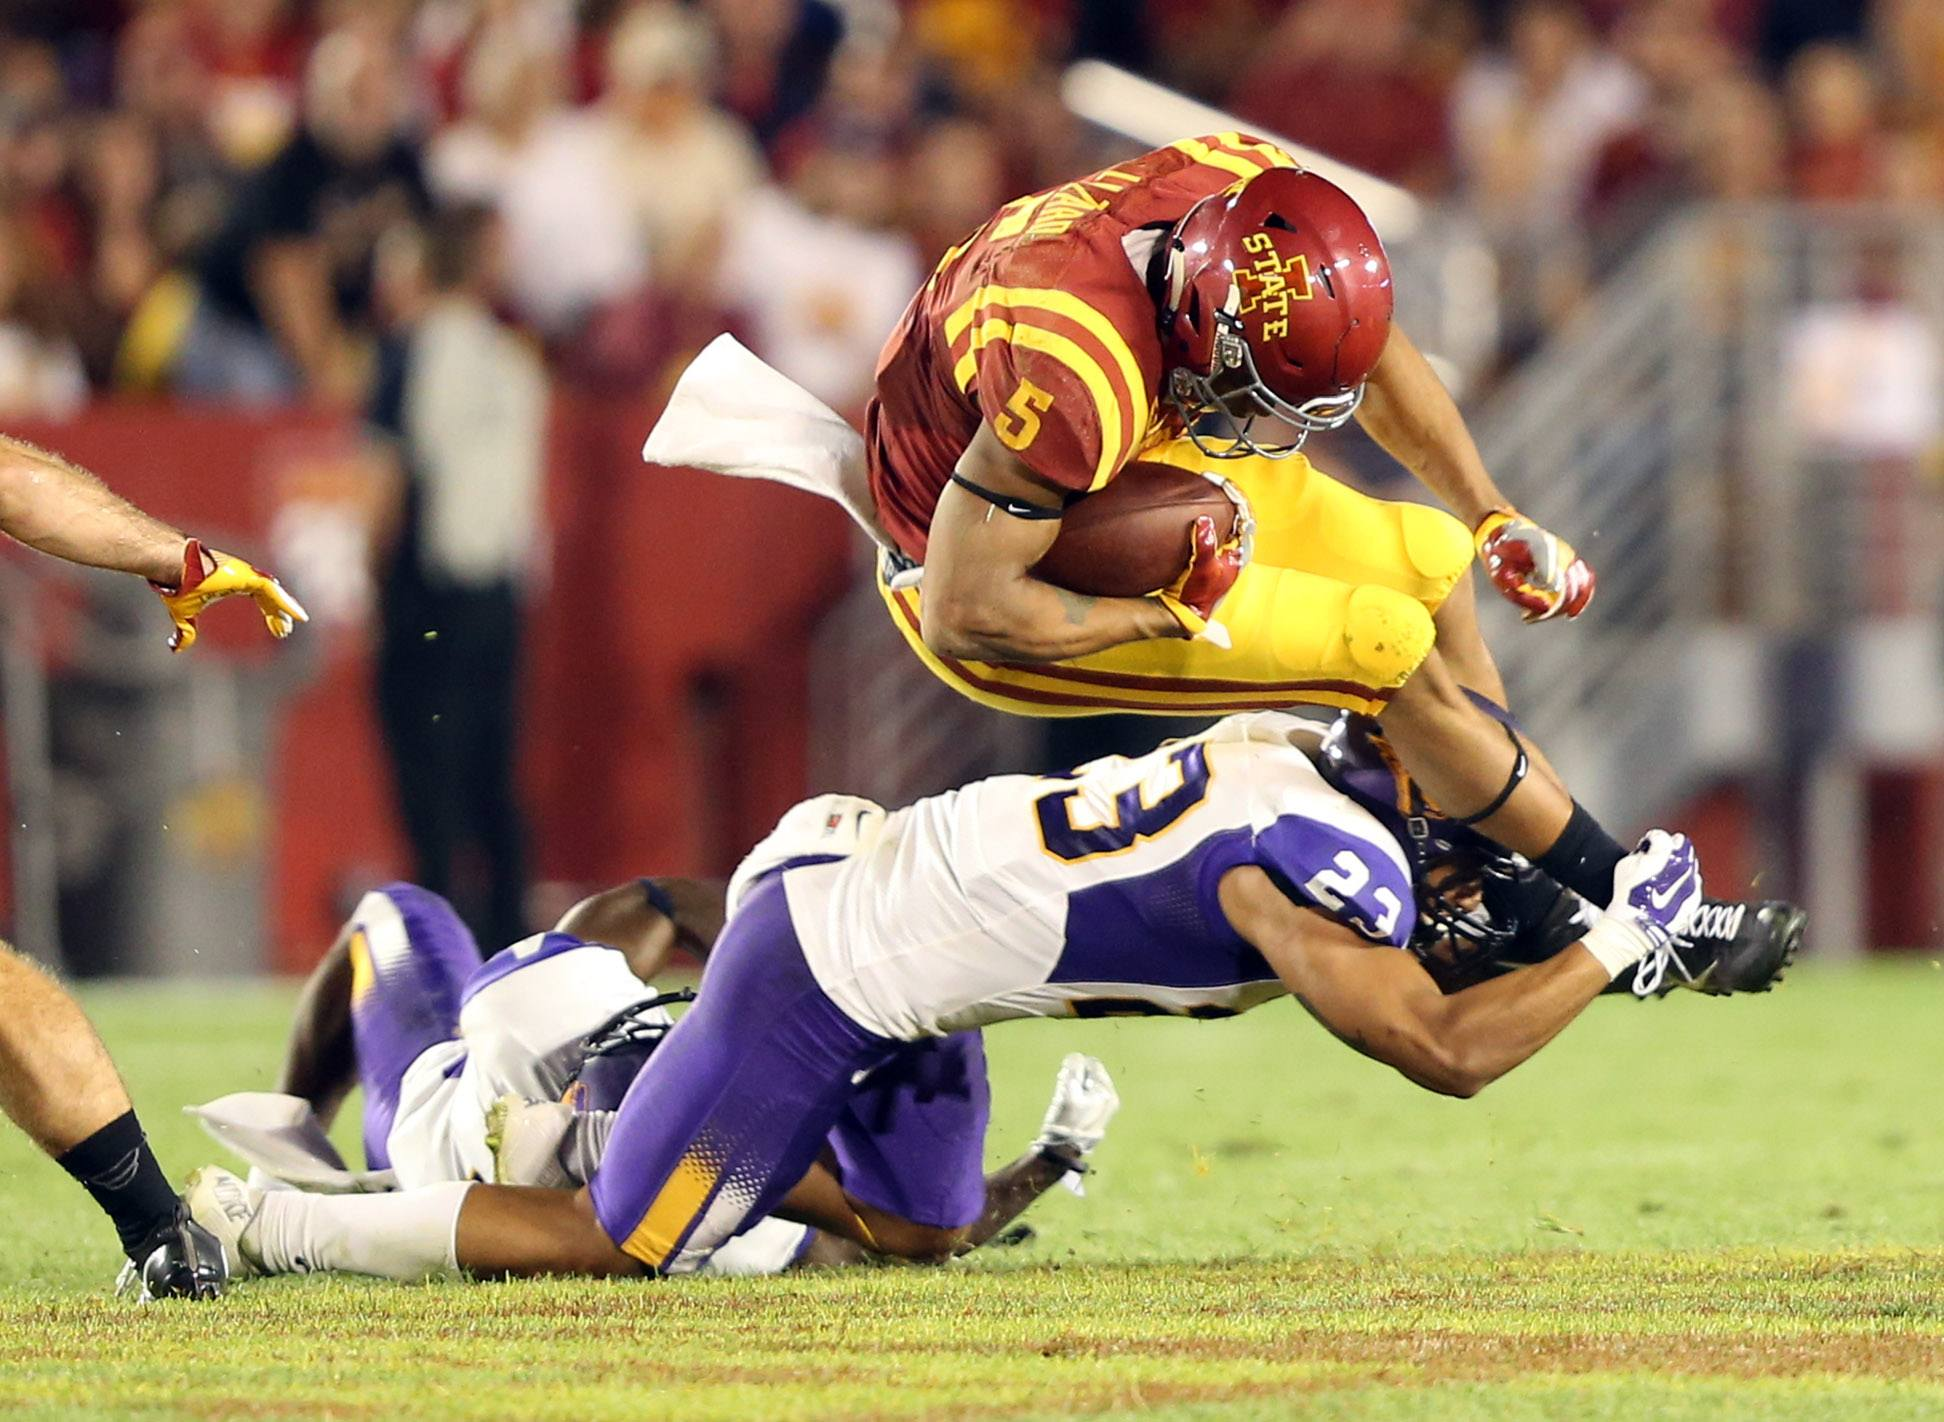 Sep 3, 2016; Ames, IA, USA; Northern Iowa Panthers linebacker A.J. Allen (23) tackles Iowa State Cyclones wide receiver Allen Lazard (5) at Jack Trice Stadium. The Panthers beat the Cyclones 25-20. Mandatory Credit: Reese Strickland-USA TODAY Sports